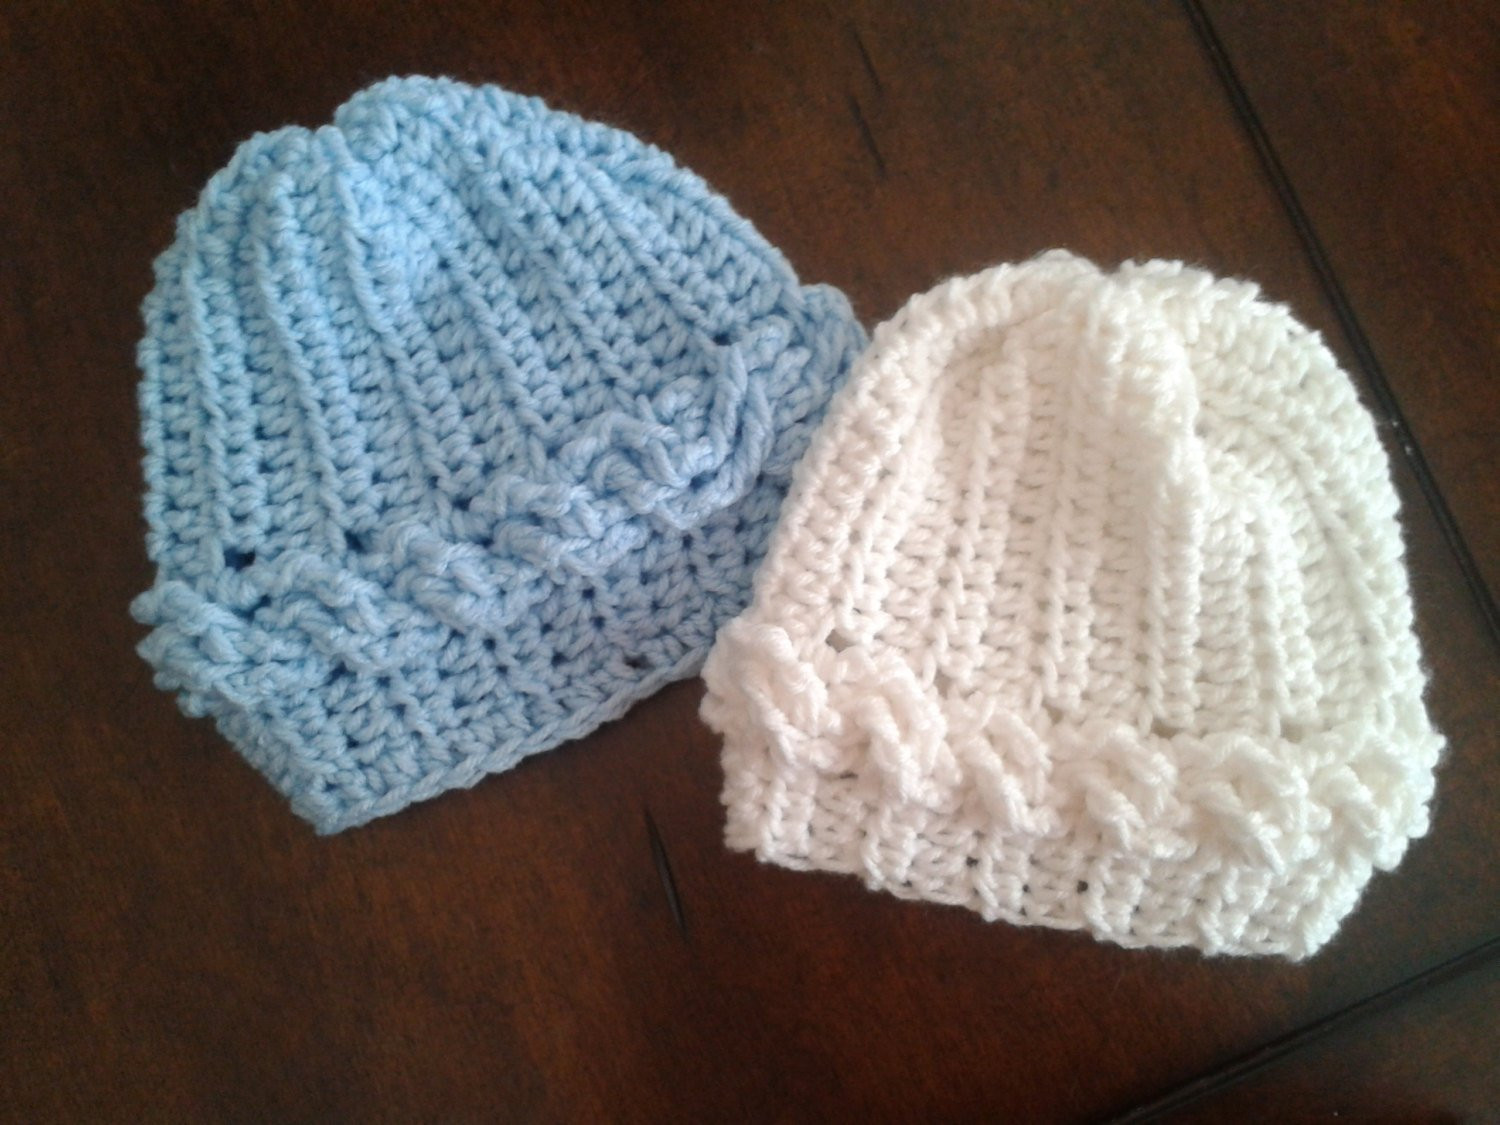 Crochet Cables Luxury Cable Stitch Beanie Hat Crochet Pattern Newborn Baby to Adult Of Amazing 48 Pics Crochet Cables